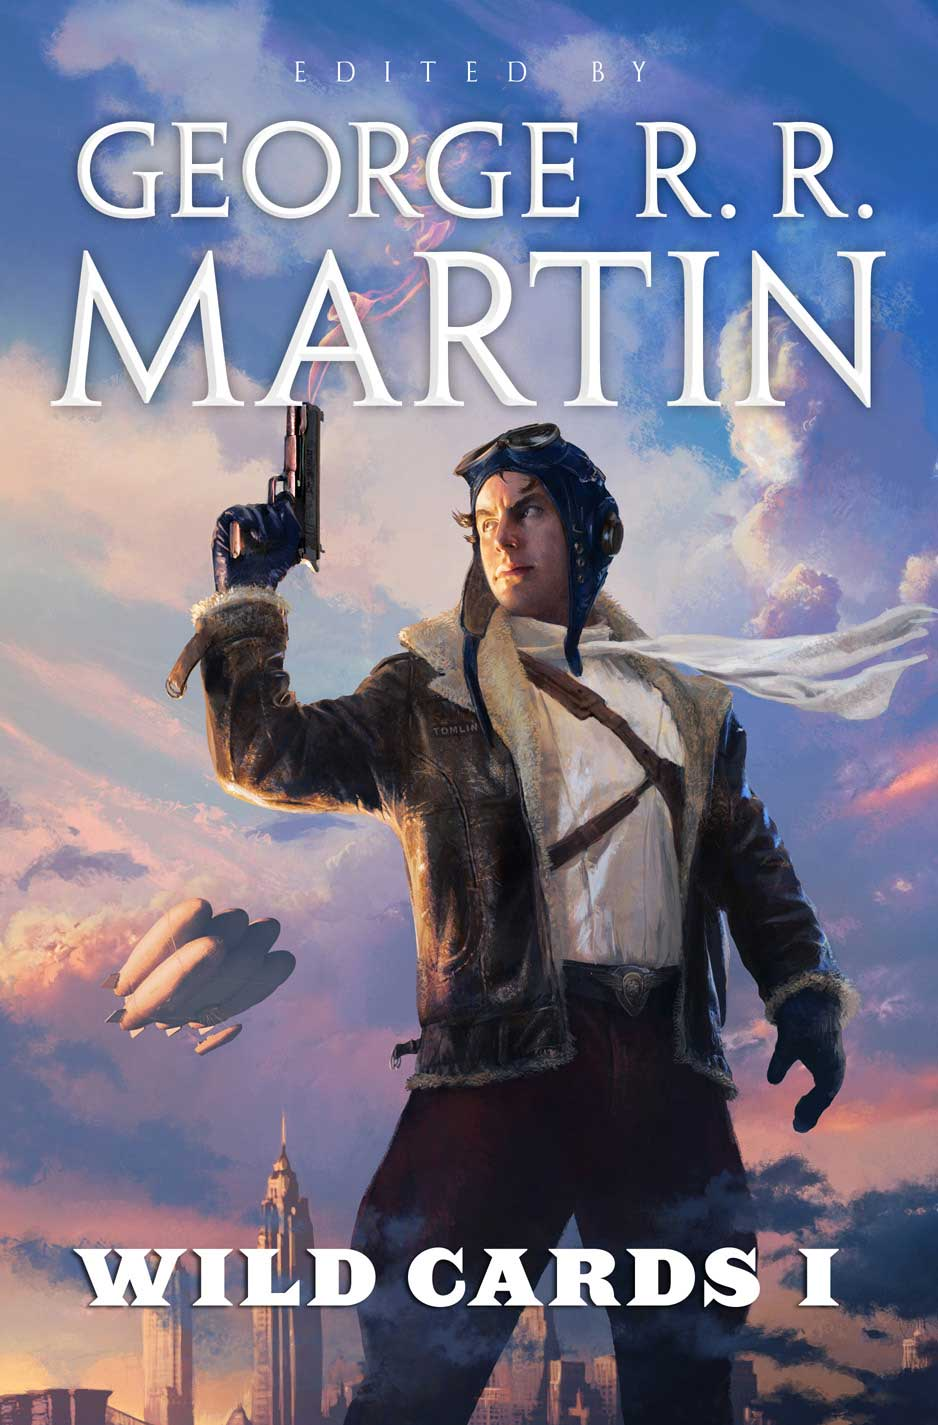 George RR Martin's Wild Cards Series Being Adapted at Hulu